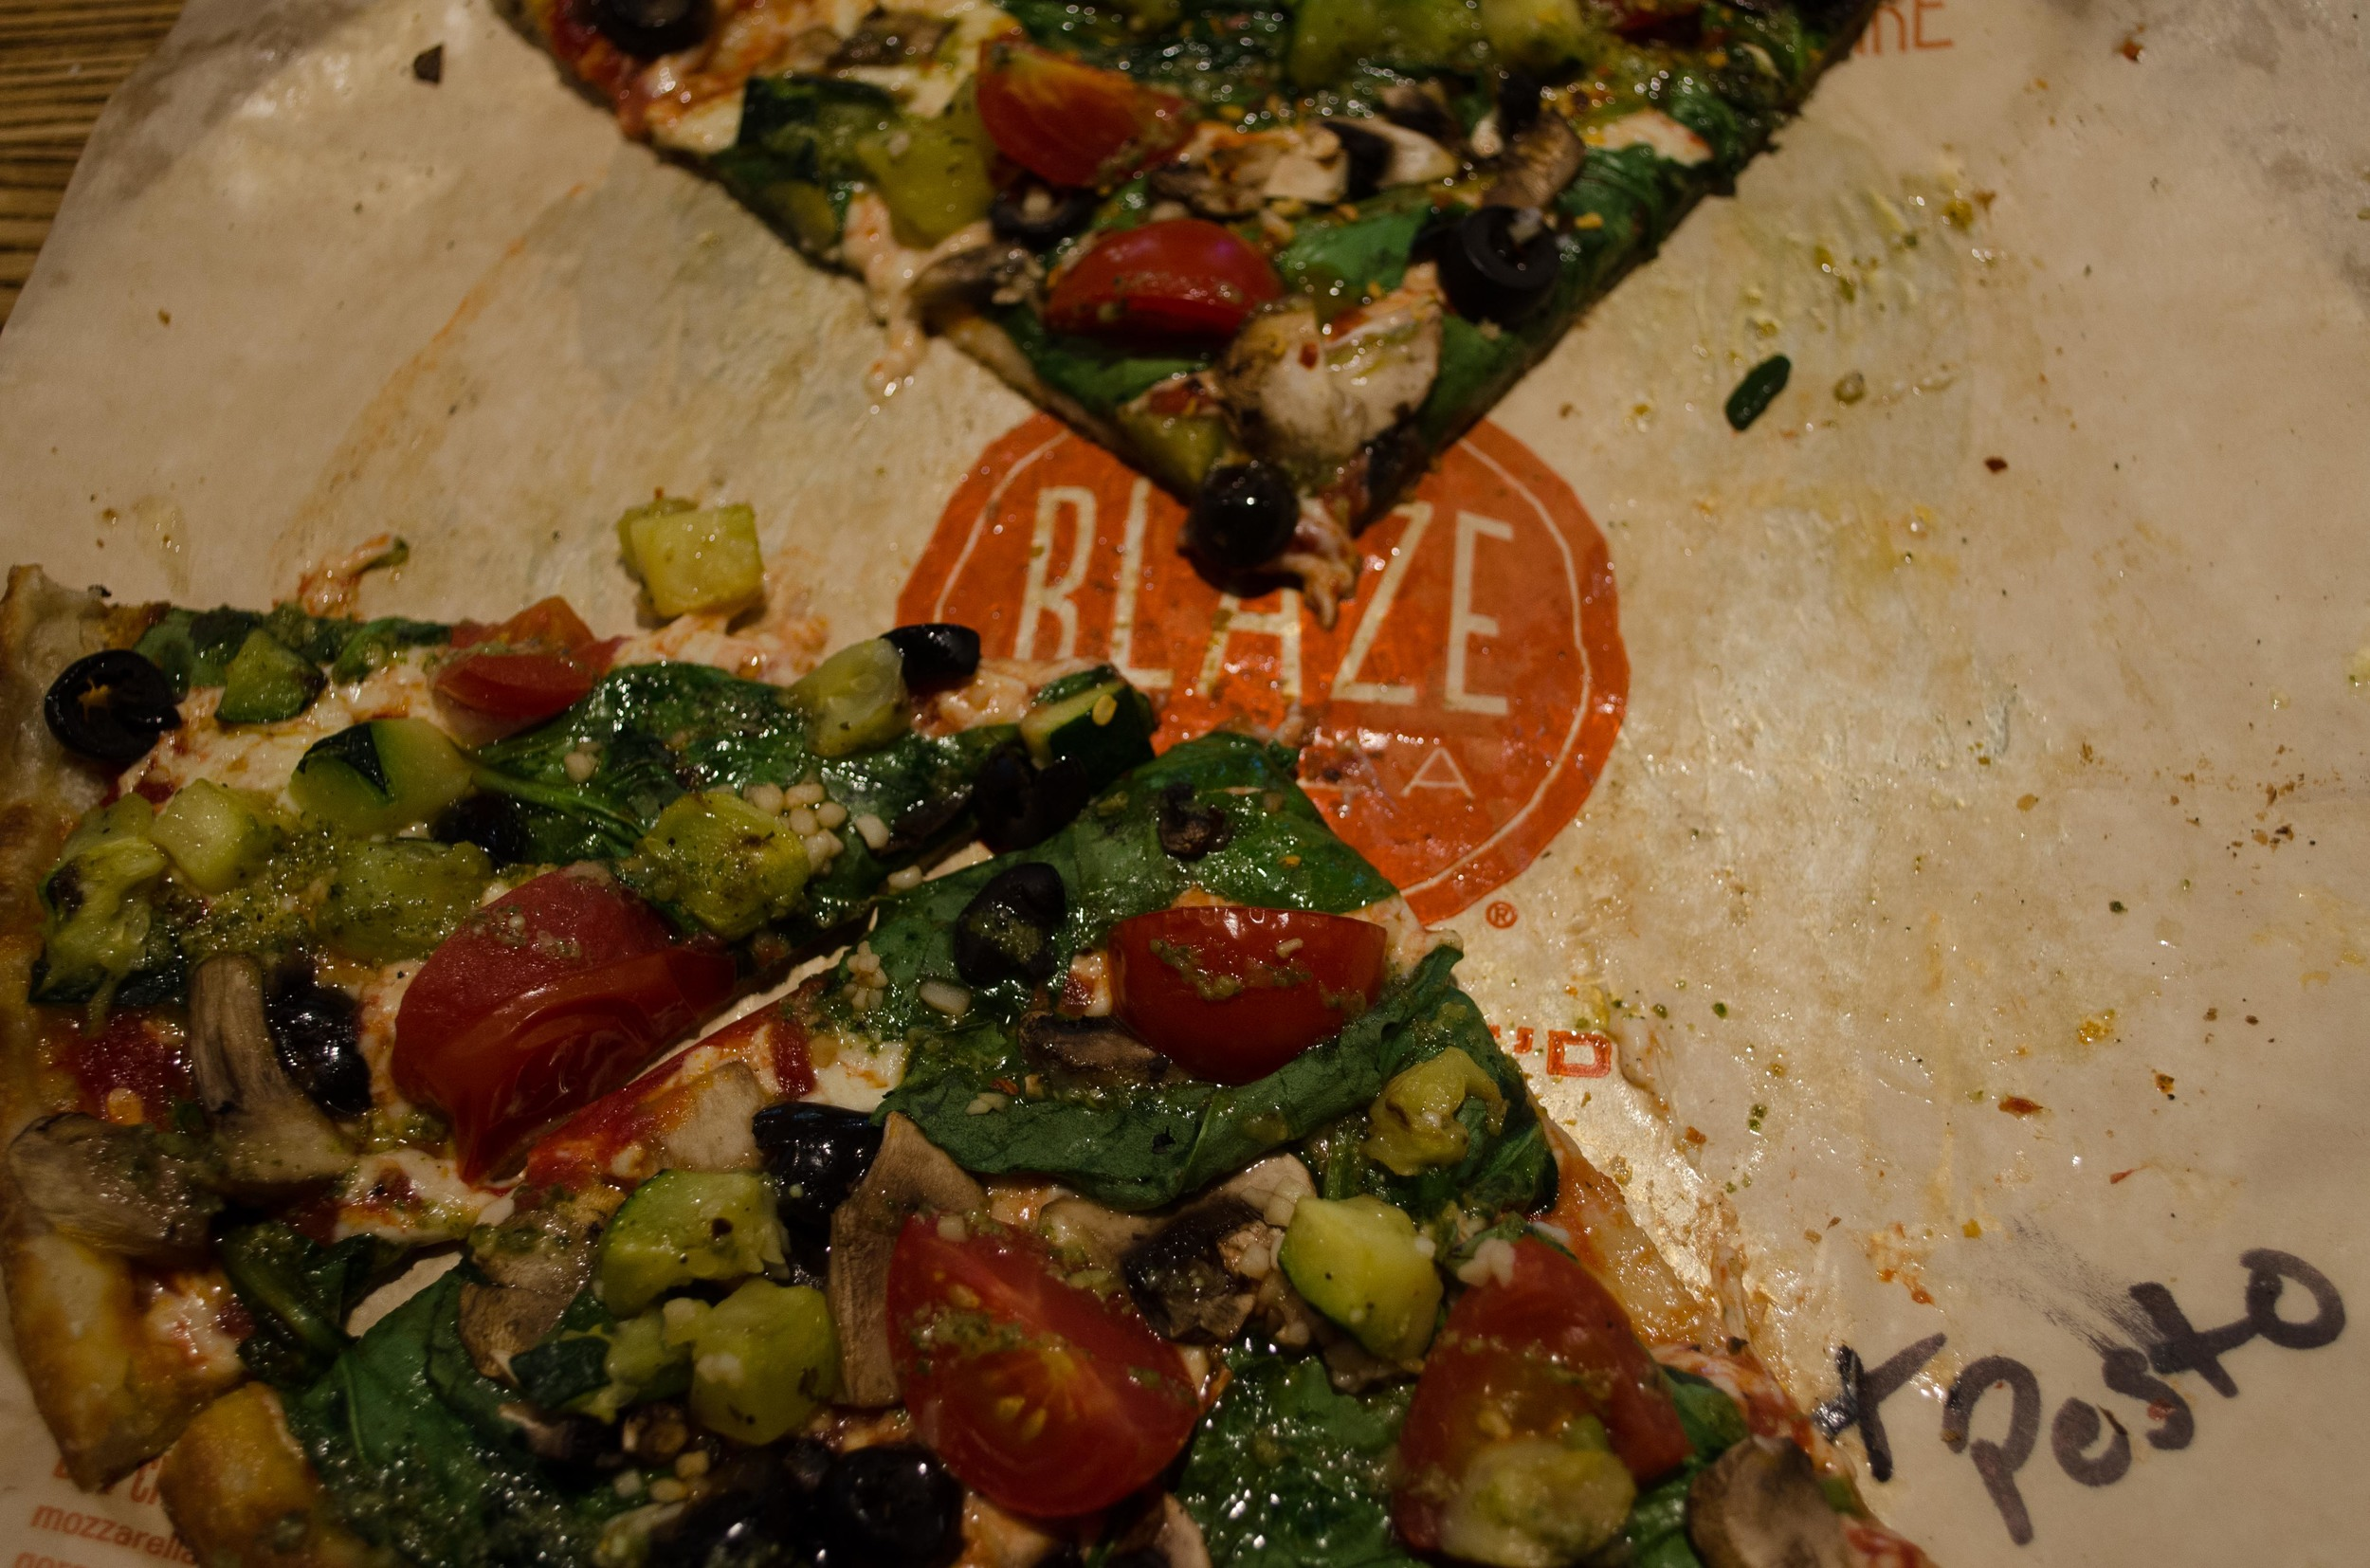 We stopped in Chicago to switch trains, and had time to eat pizza (vegan) at the Blaze.  Om nom nom pesto.